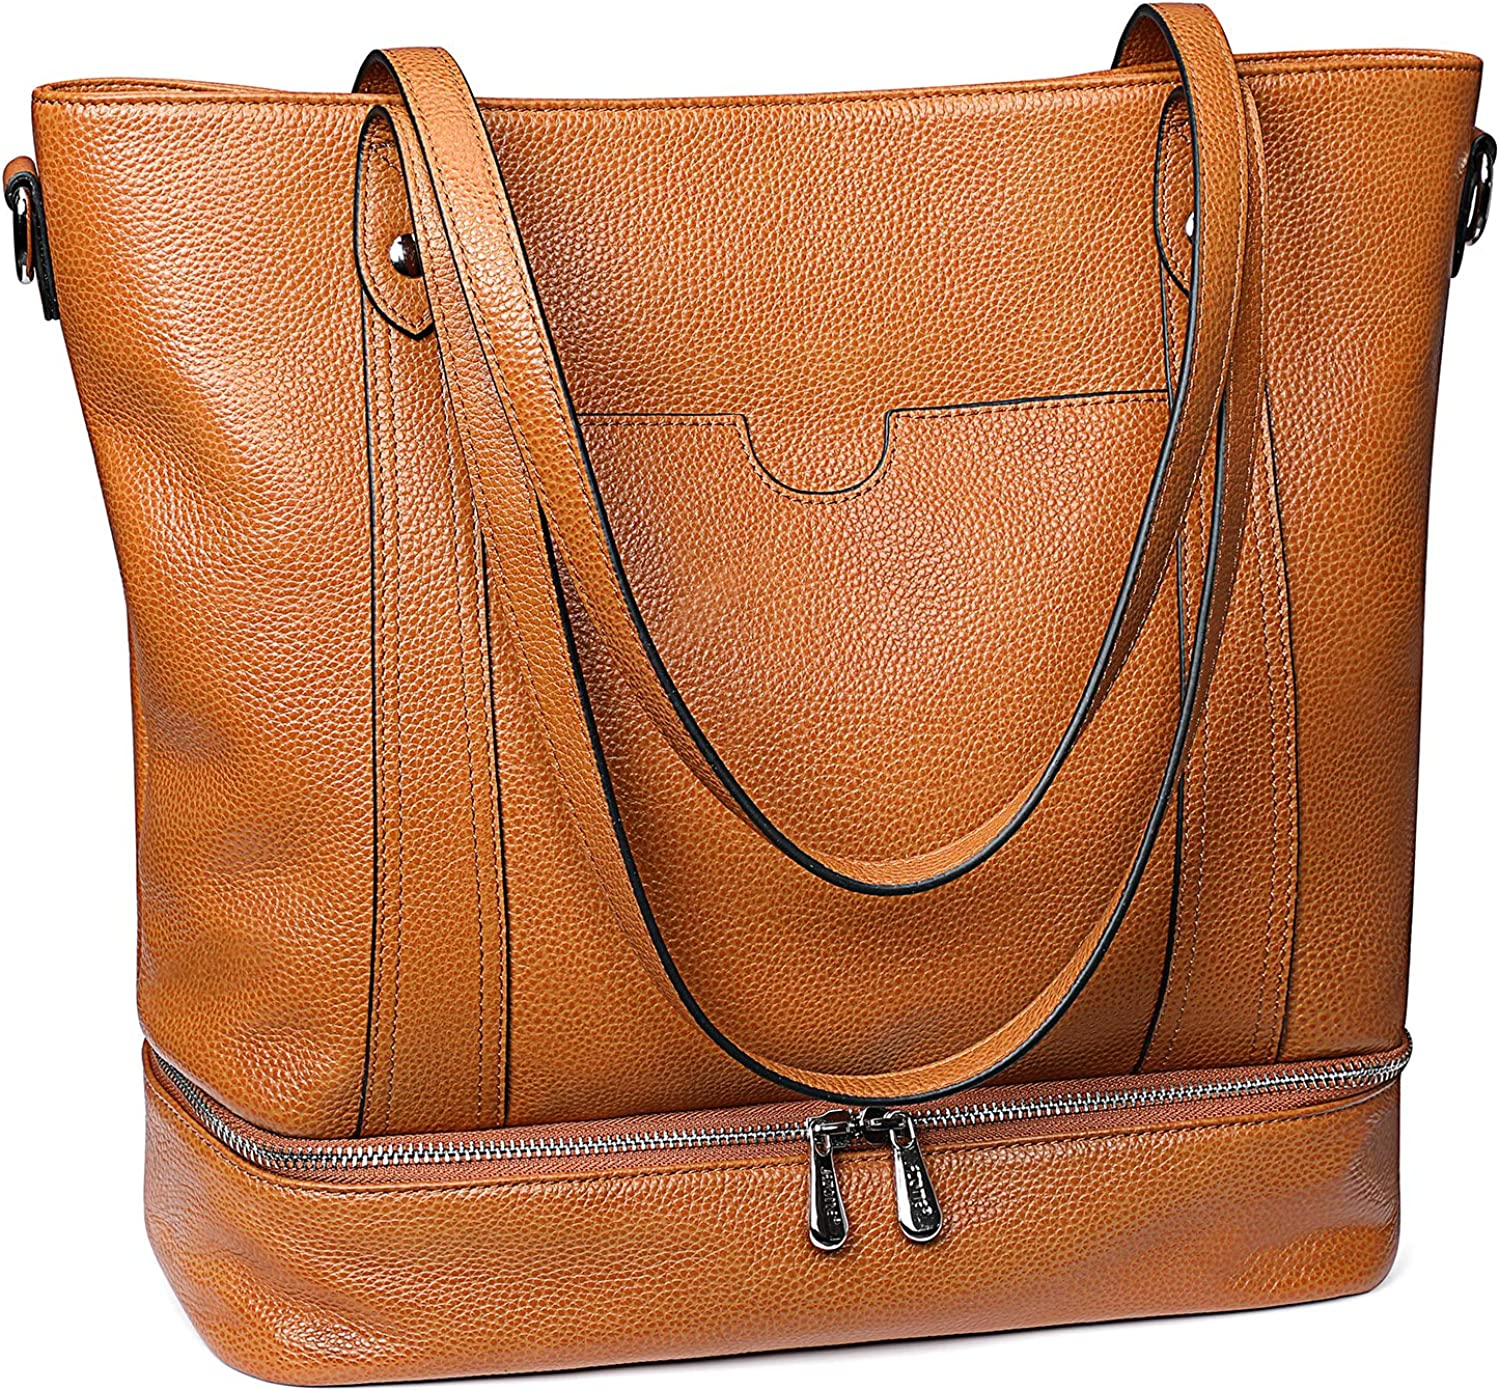 S-ZONE Women Soft Genuine Indianapolis Mall Leather Quality inspection Handbag Tote Larg Shoulder Bag